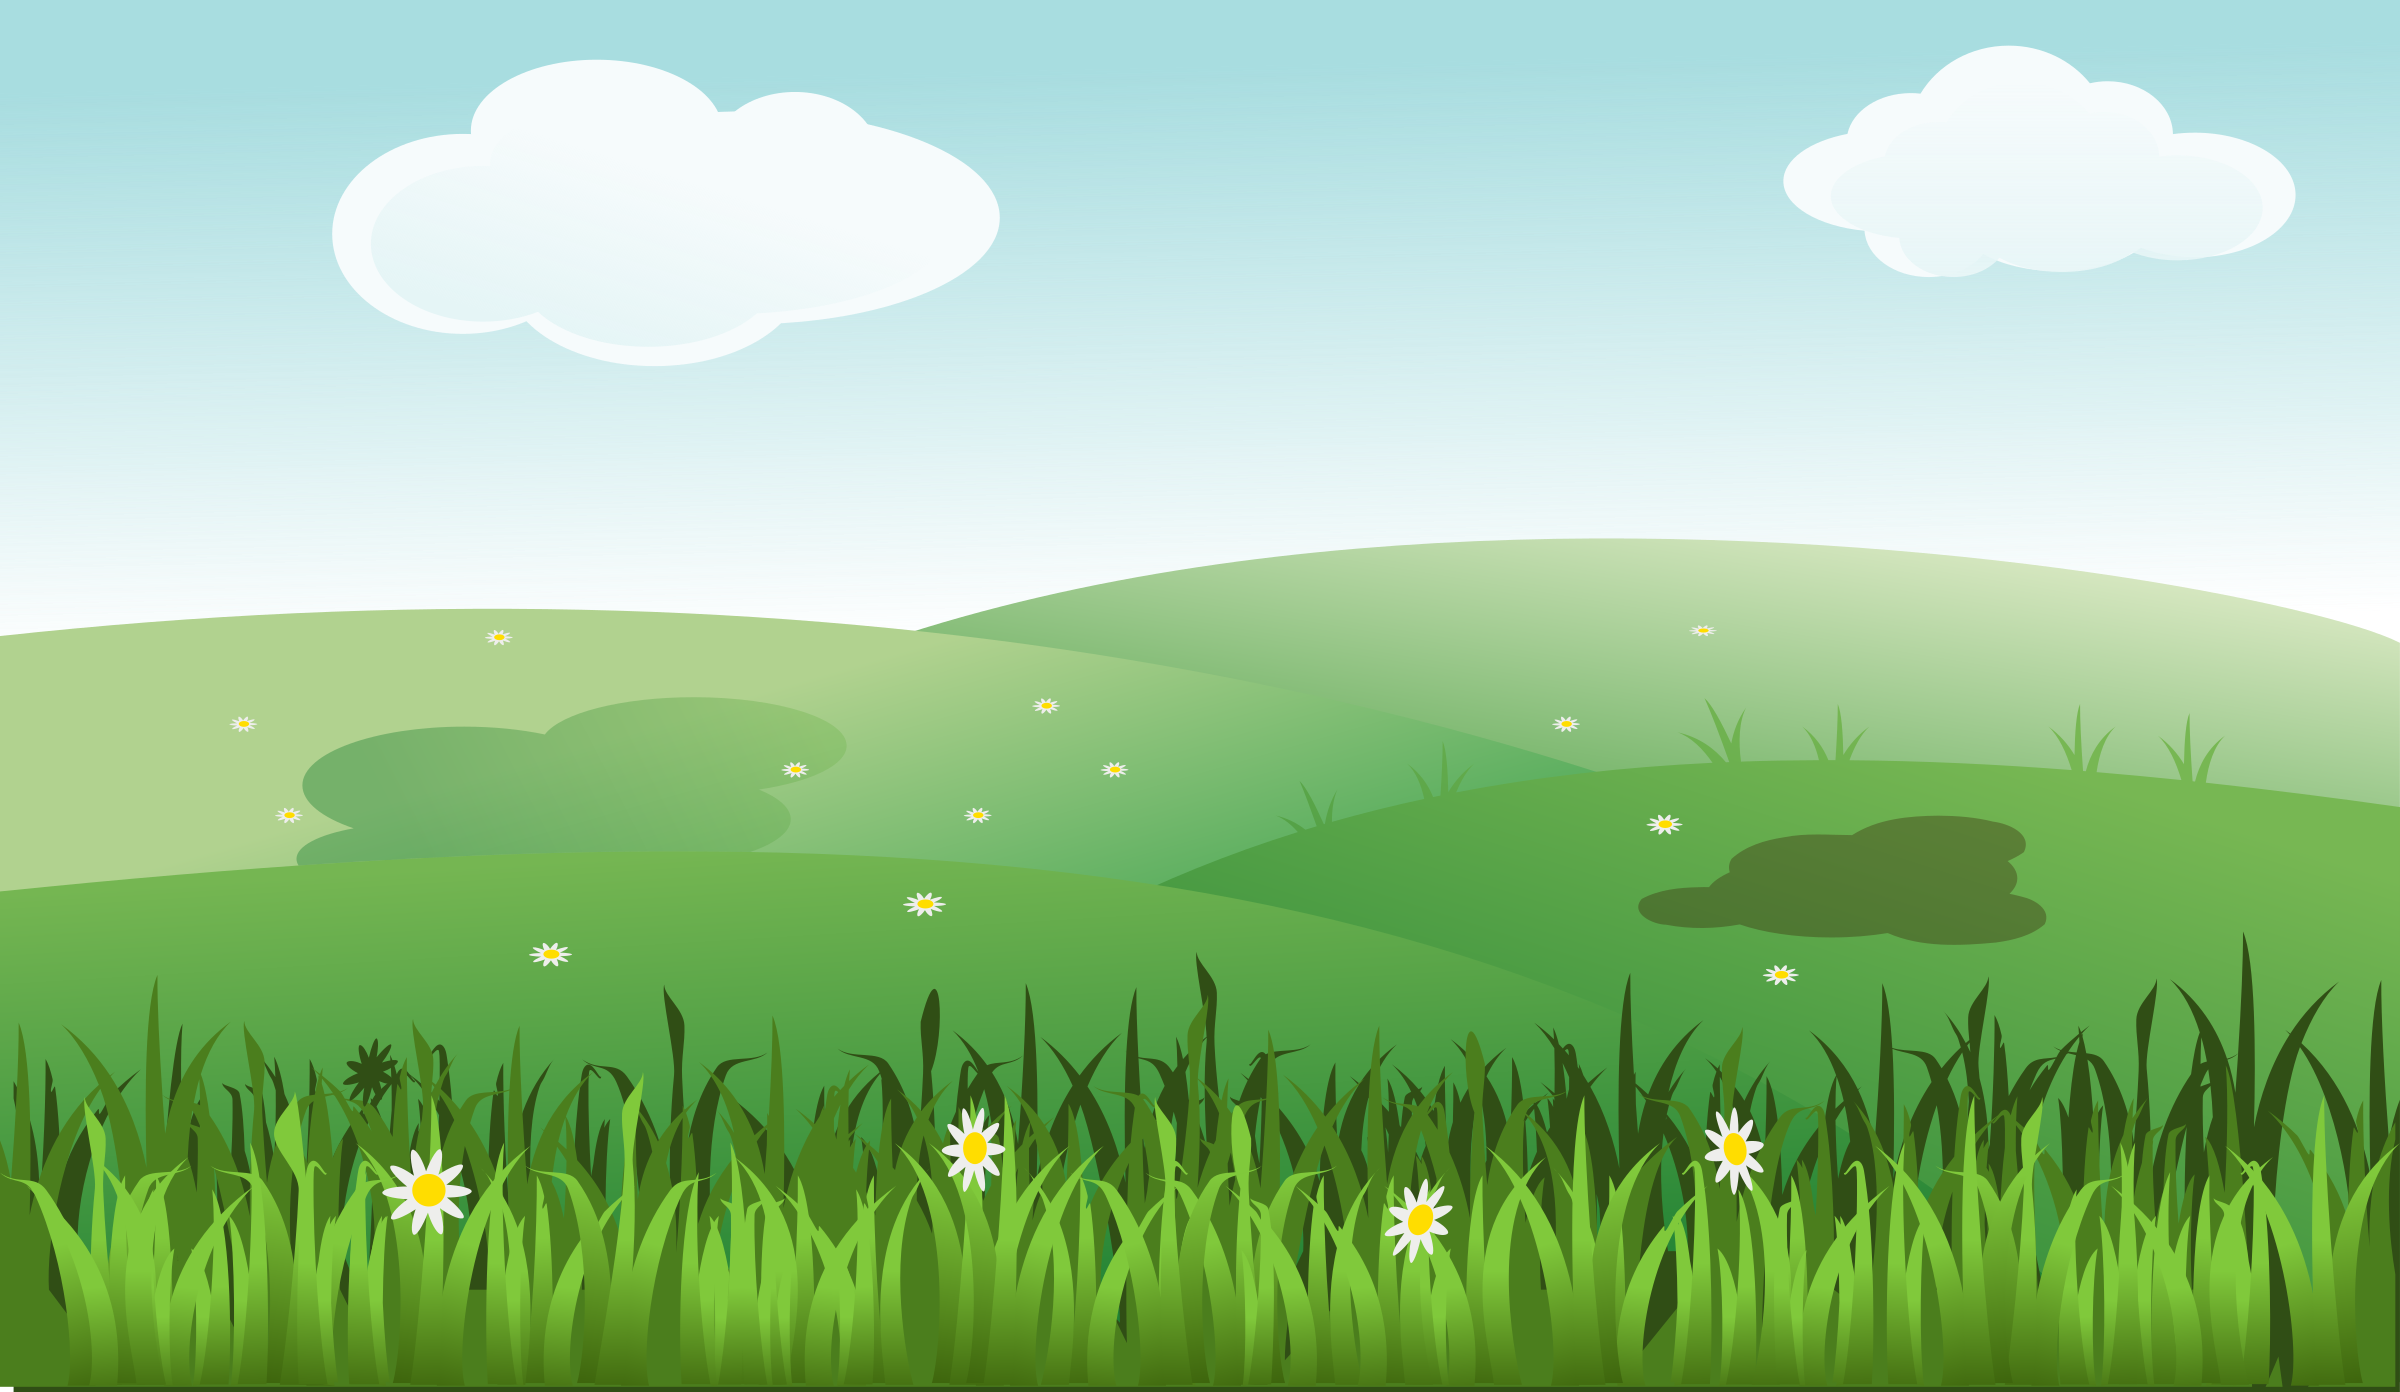 Landscape big image png. Clipart grass scenery